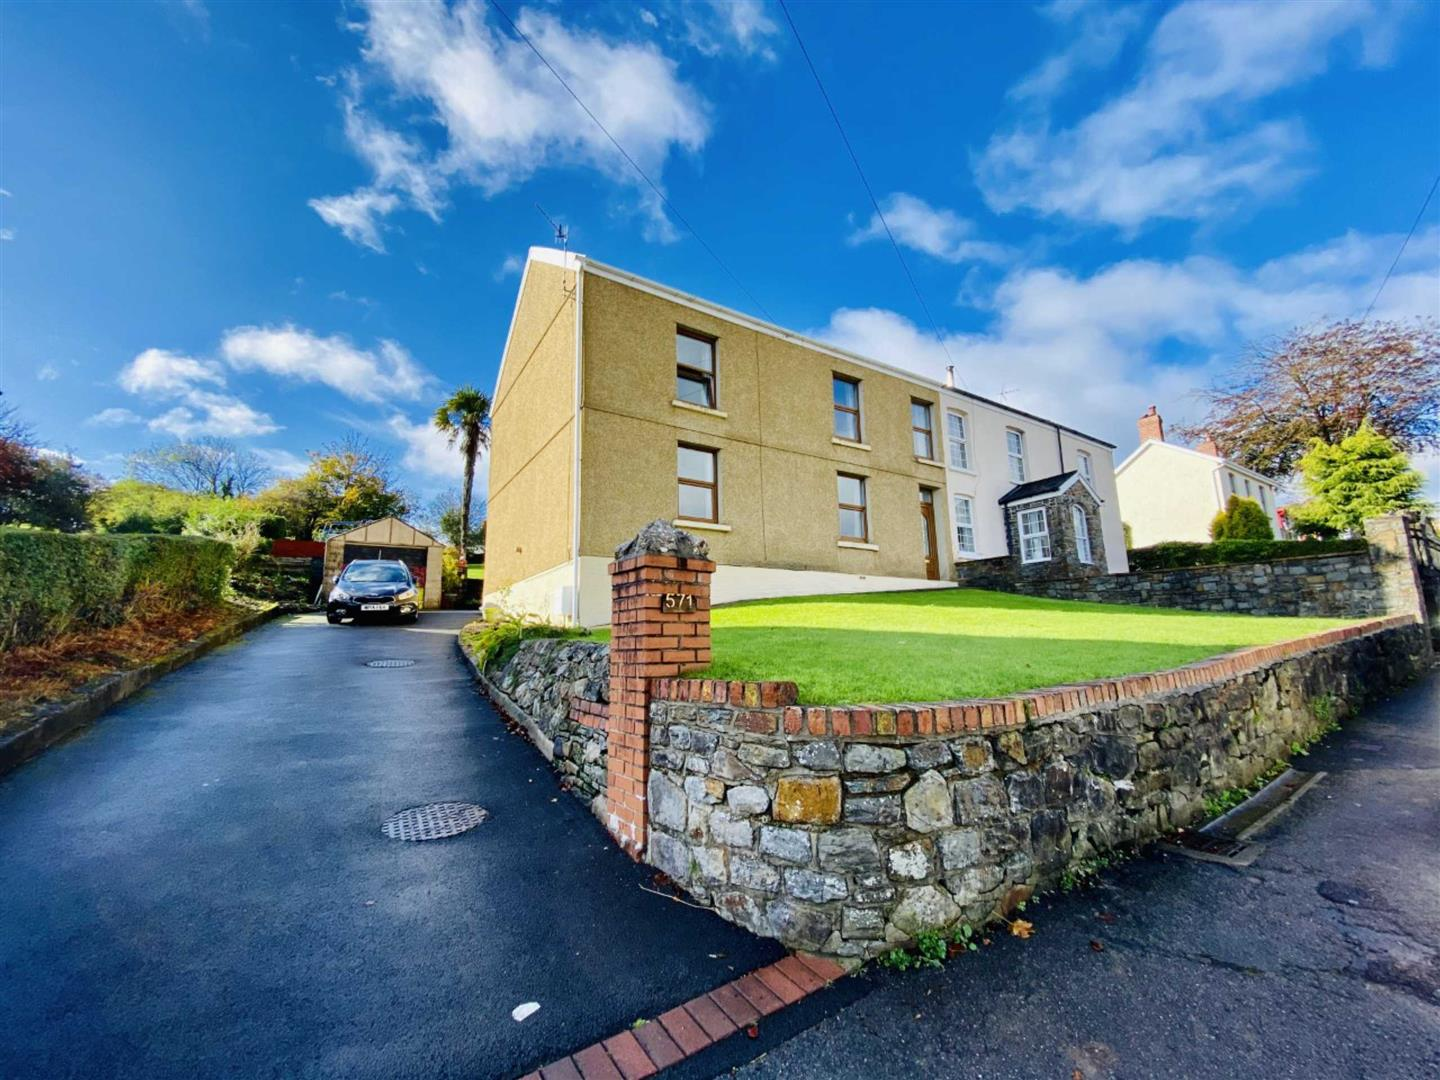 Gower Road, Upper Killay, Swansea, SA2 7DR